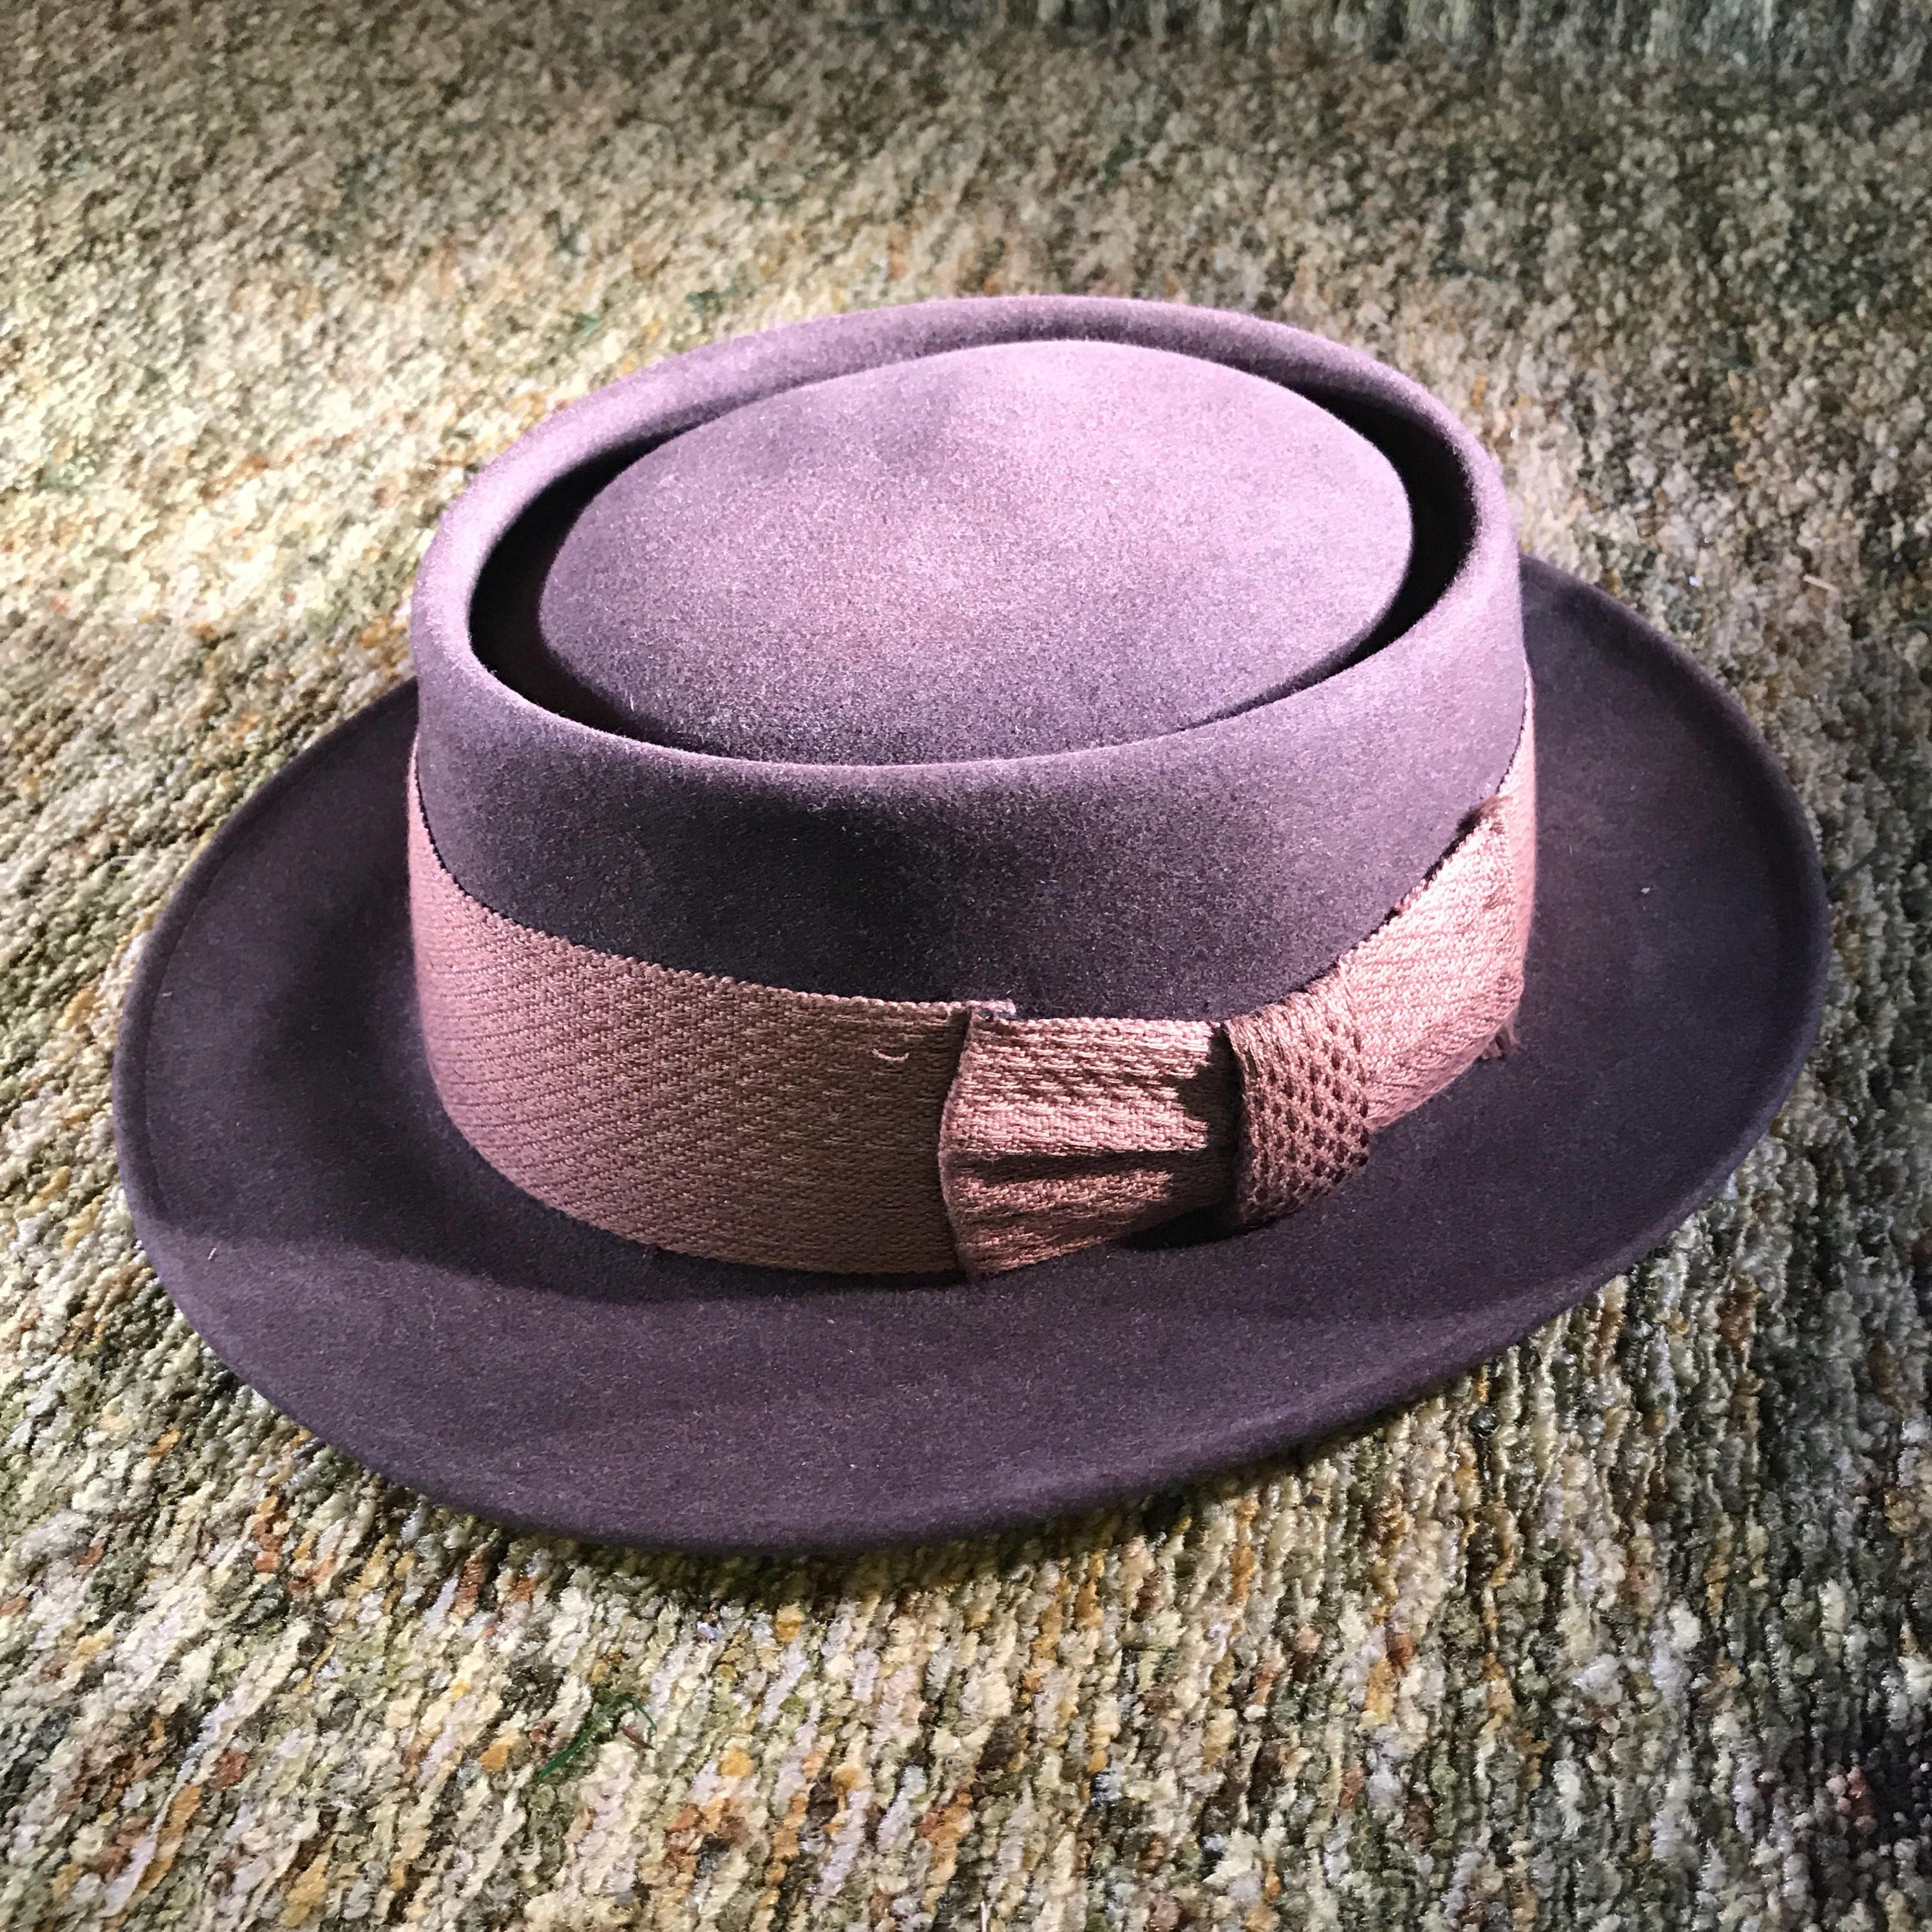 6b3622fb8f449 Hat Fedora Vintage 1950 s Dobbs Fifth Avenue Hat Box Brown Felt Fedora with  Two Toned Brown Bow Band Engraved  Klopfenstien s and Game Bird by ...